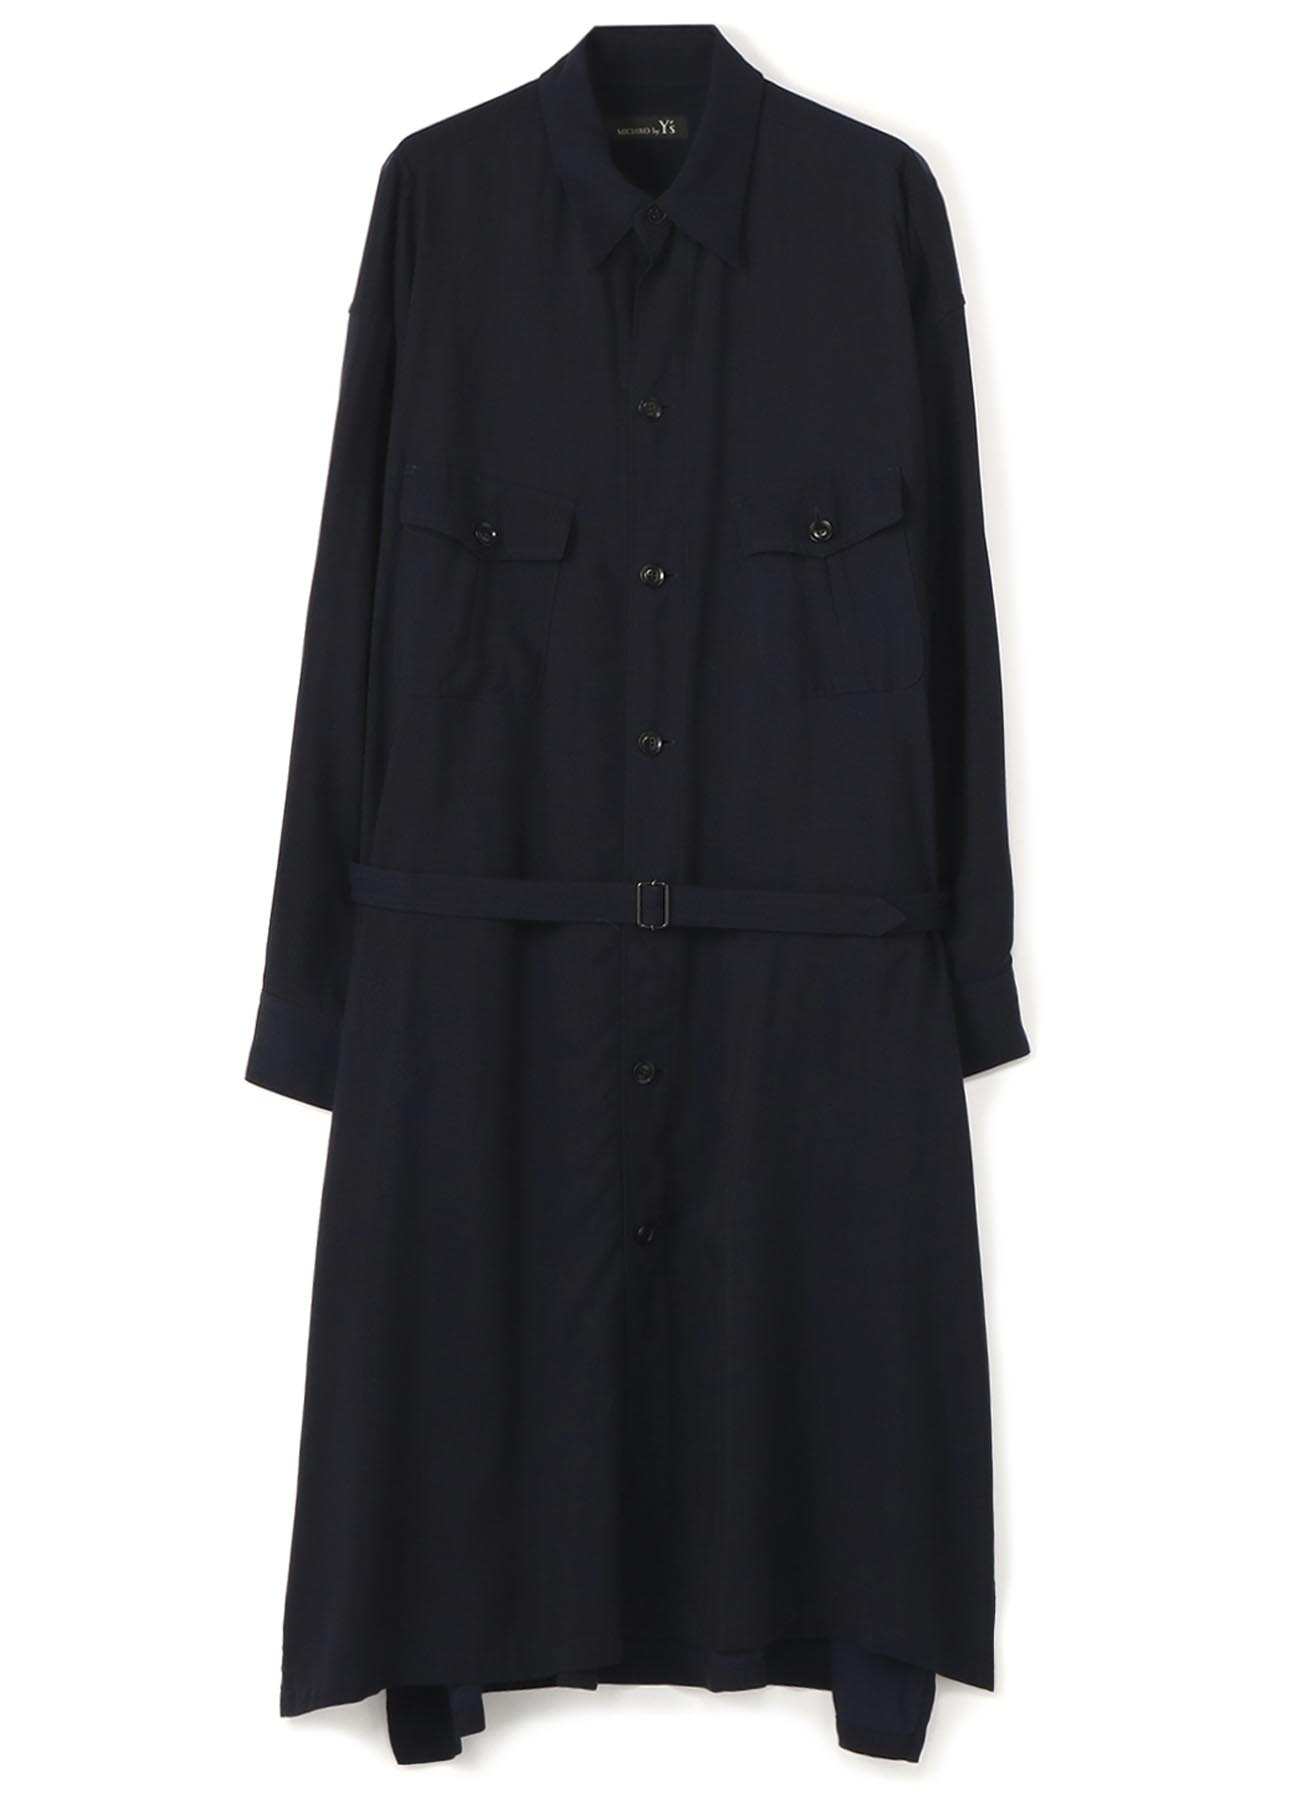 MICHIKObyY's RAYON CUPRA TUSSAH 2 CHEST POCKETS SHIRT DRESS